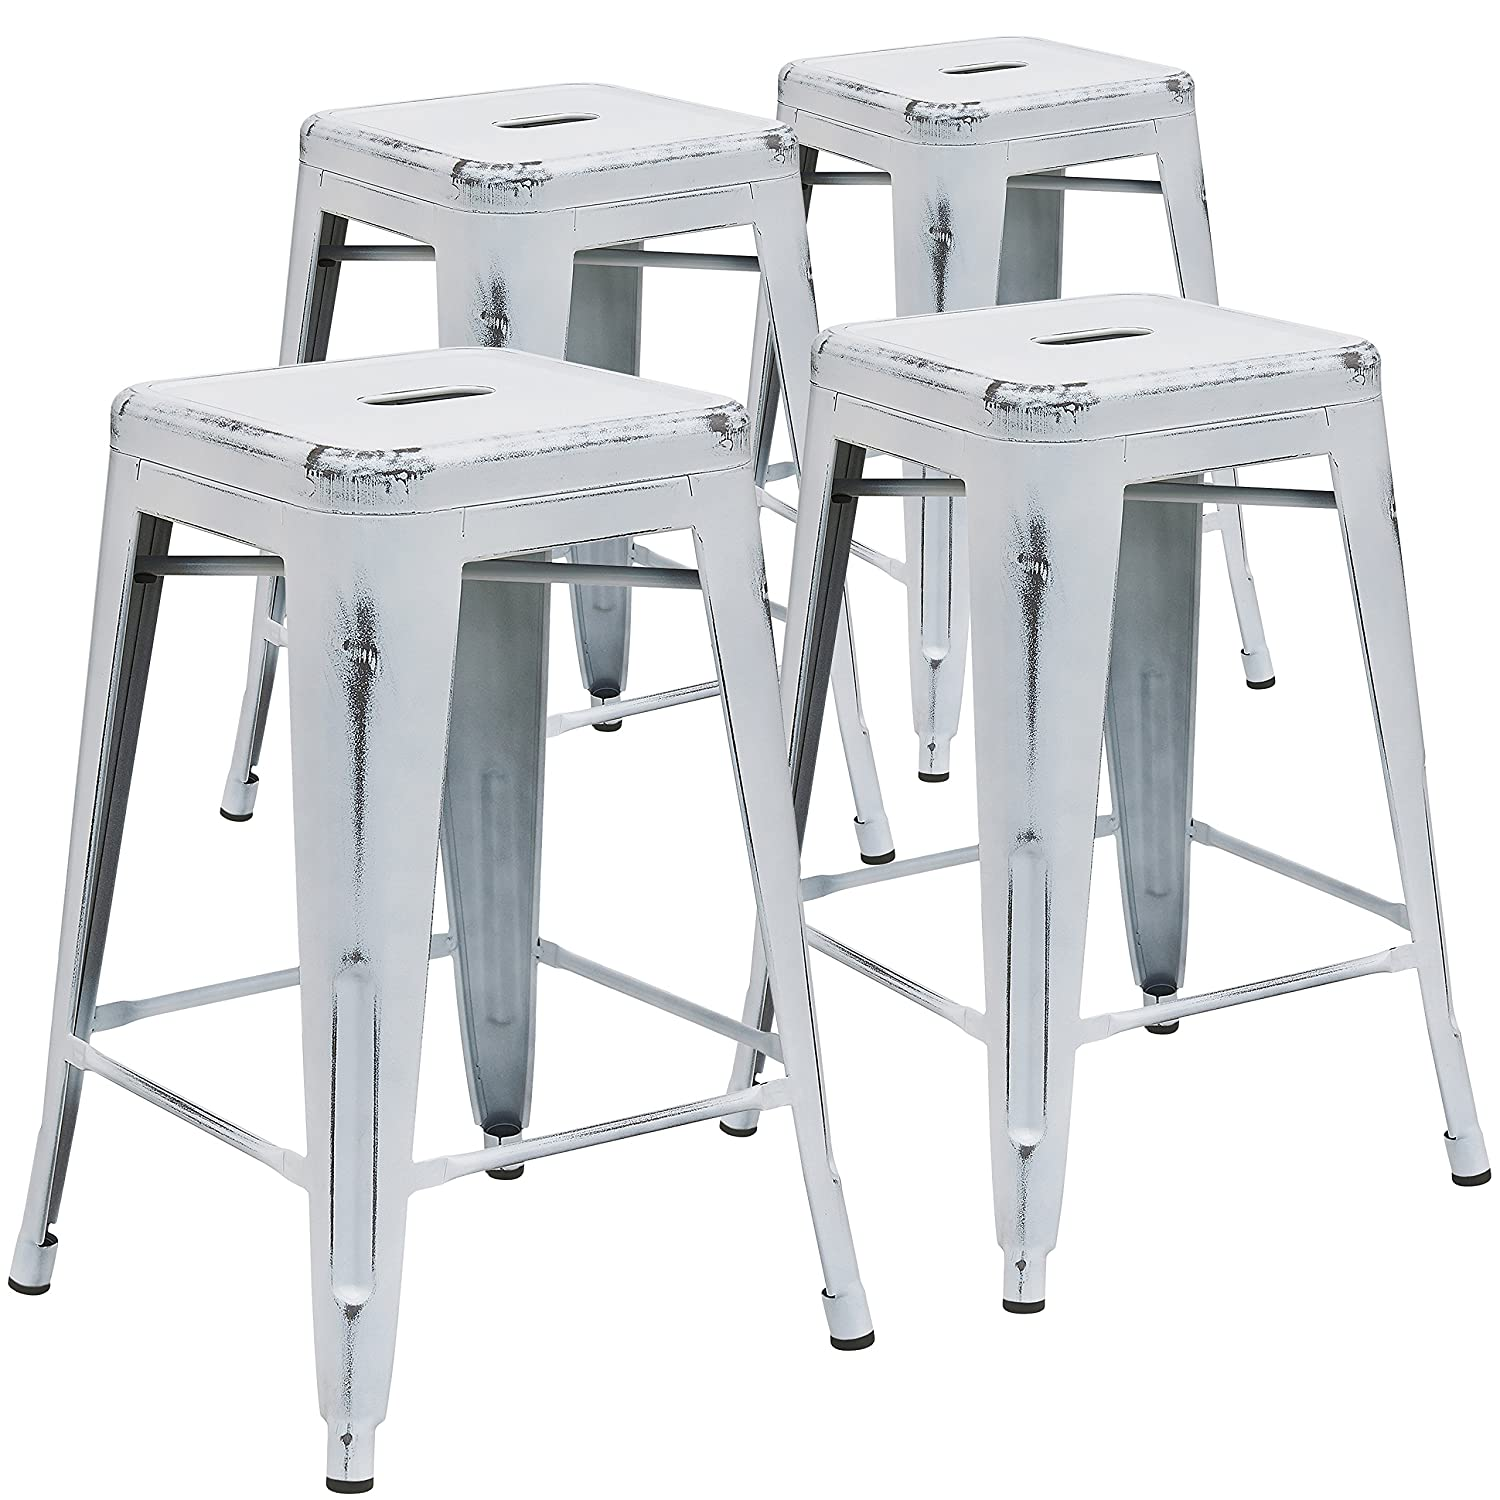 Amazon.com Flash Furniture 24u0027u0027 High Backless Distressed White Metal Indoor-Outdoor Counter Height Stool Kitchen u0026 Dining  sc 1 st  Amazon.com & Amazon.com: Flash Furniture 24u0027u0027 High Backless Distressed White ... islam-shia.org